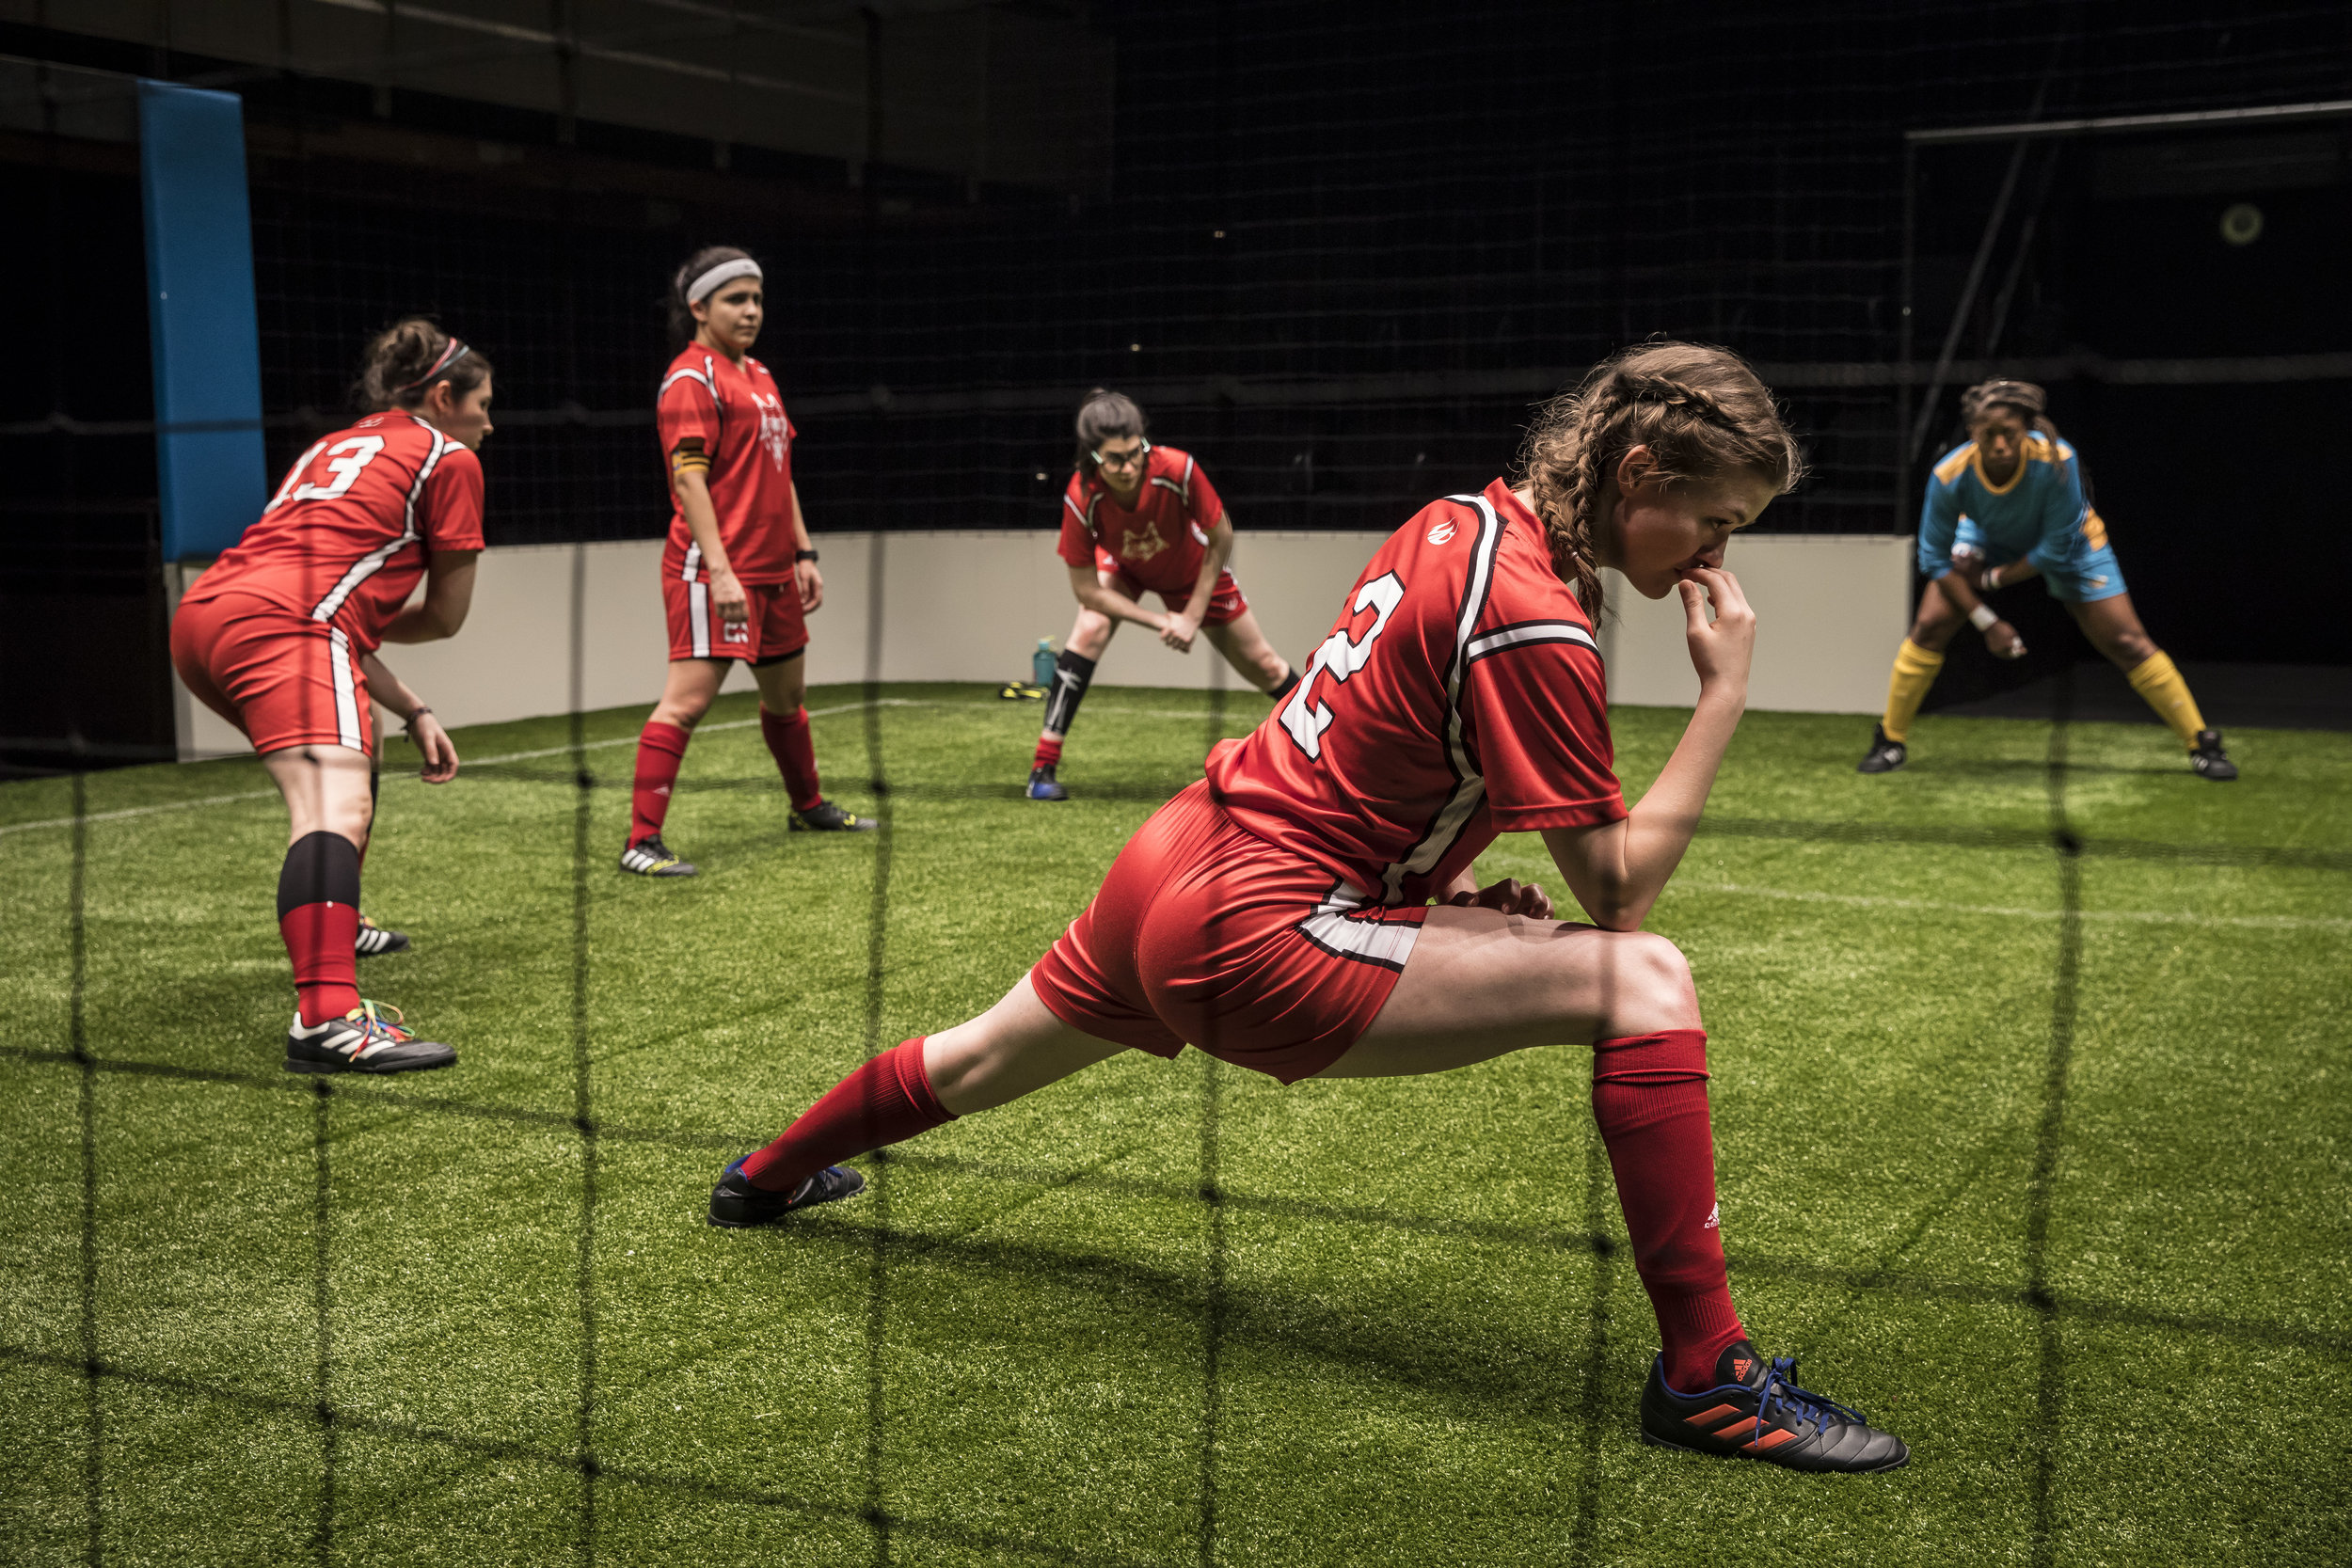 Taylor Blim (#2), Mary Tilden (#13), Isa Arciniegas  (#25), Sarah Price (#11) and  Angela Alise (#00) in  The Wolves by Sarah DeLappe. Photo credit: Liz Lauren.